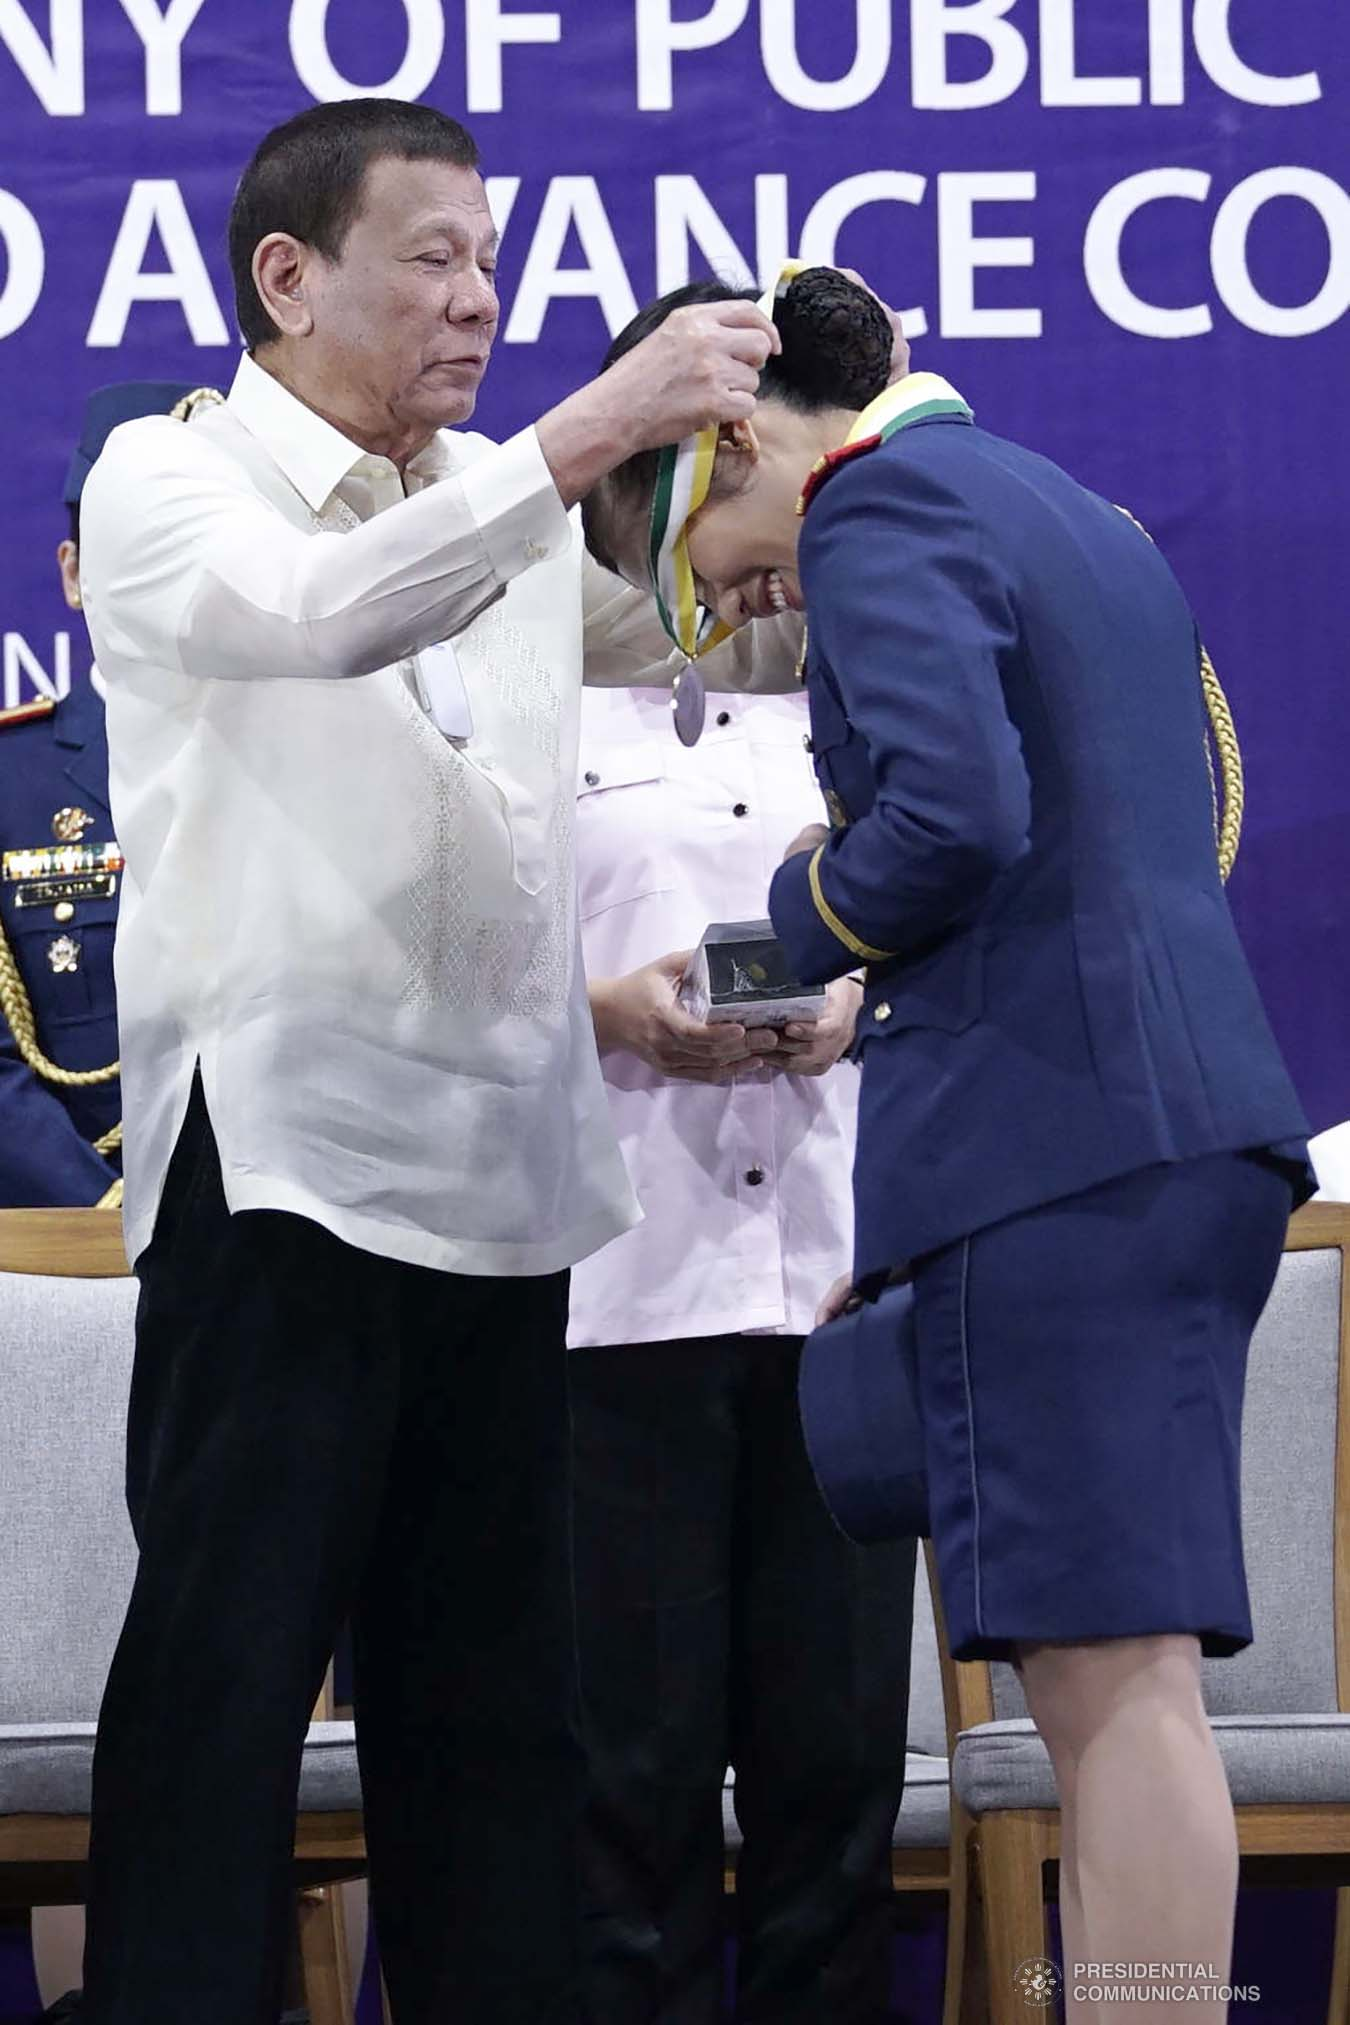 President Rodrigo Roa Duterte confers a medal to one of the awardees during the joint graduation ceremony of Public Safety Officers Basic Course Class 2019-07 and Advance Course Class 2019-18 at the Arcadia Active Lifestyle Center in Davao City on February 20, 2020. ARMAN BAYLON/PRESIDENTIAL PHOTO